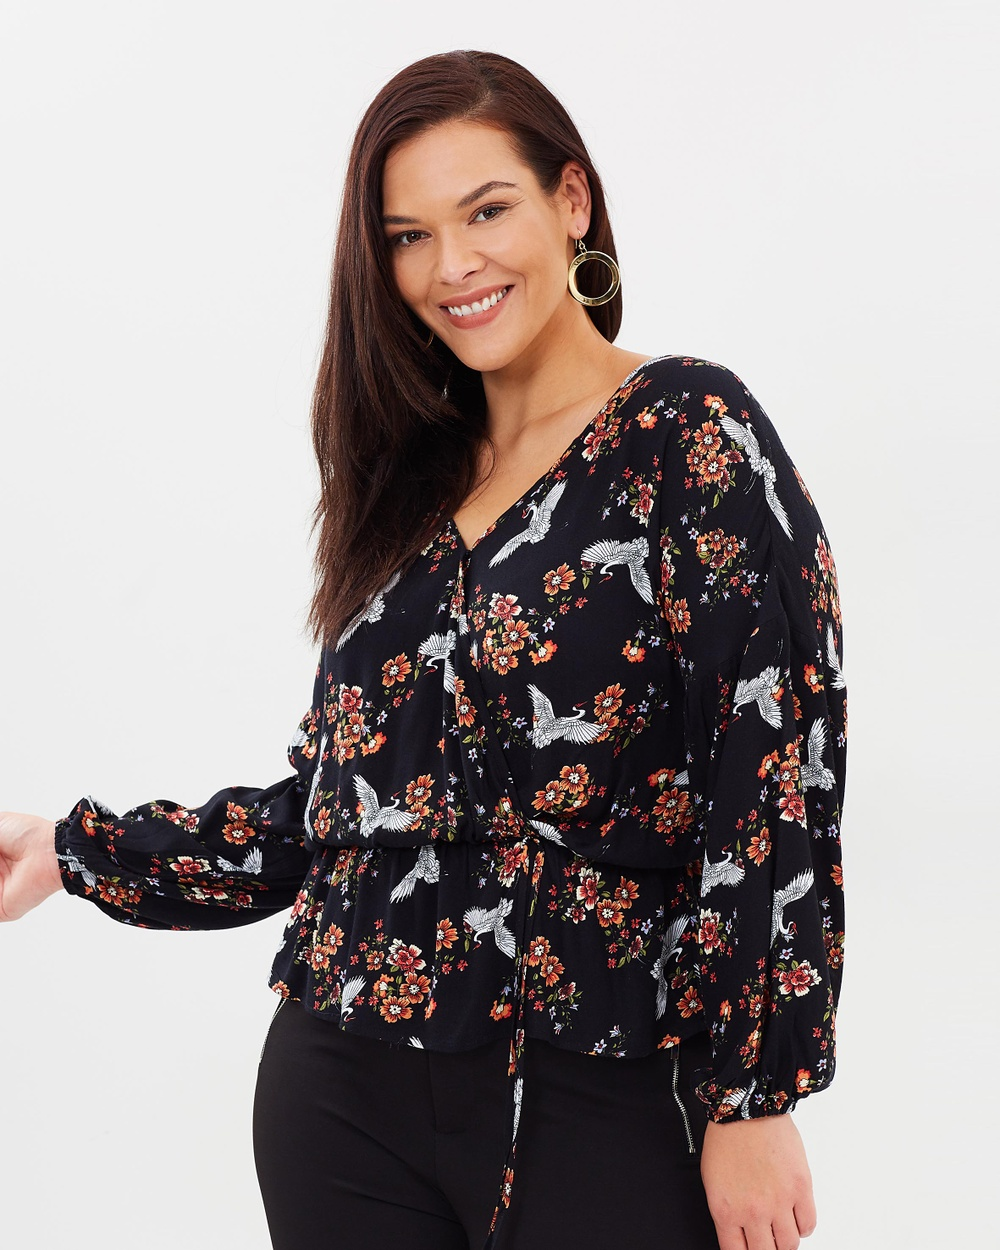 Atmos & Here Curvy ICONIC EXCLUSIVE Aurora Wrap Top Tops Oriental Black Floral ICONIC EXCLUSIVE Aurora Wrap Top